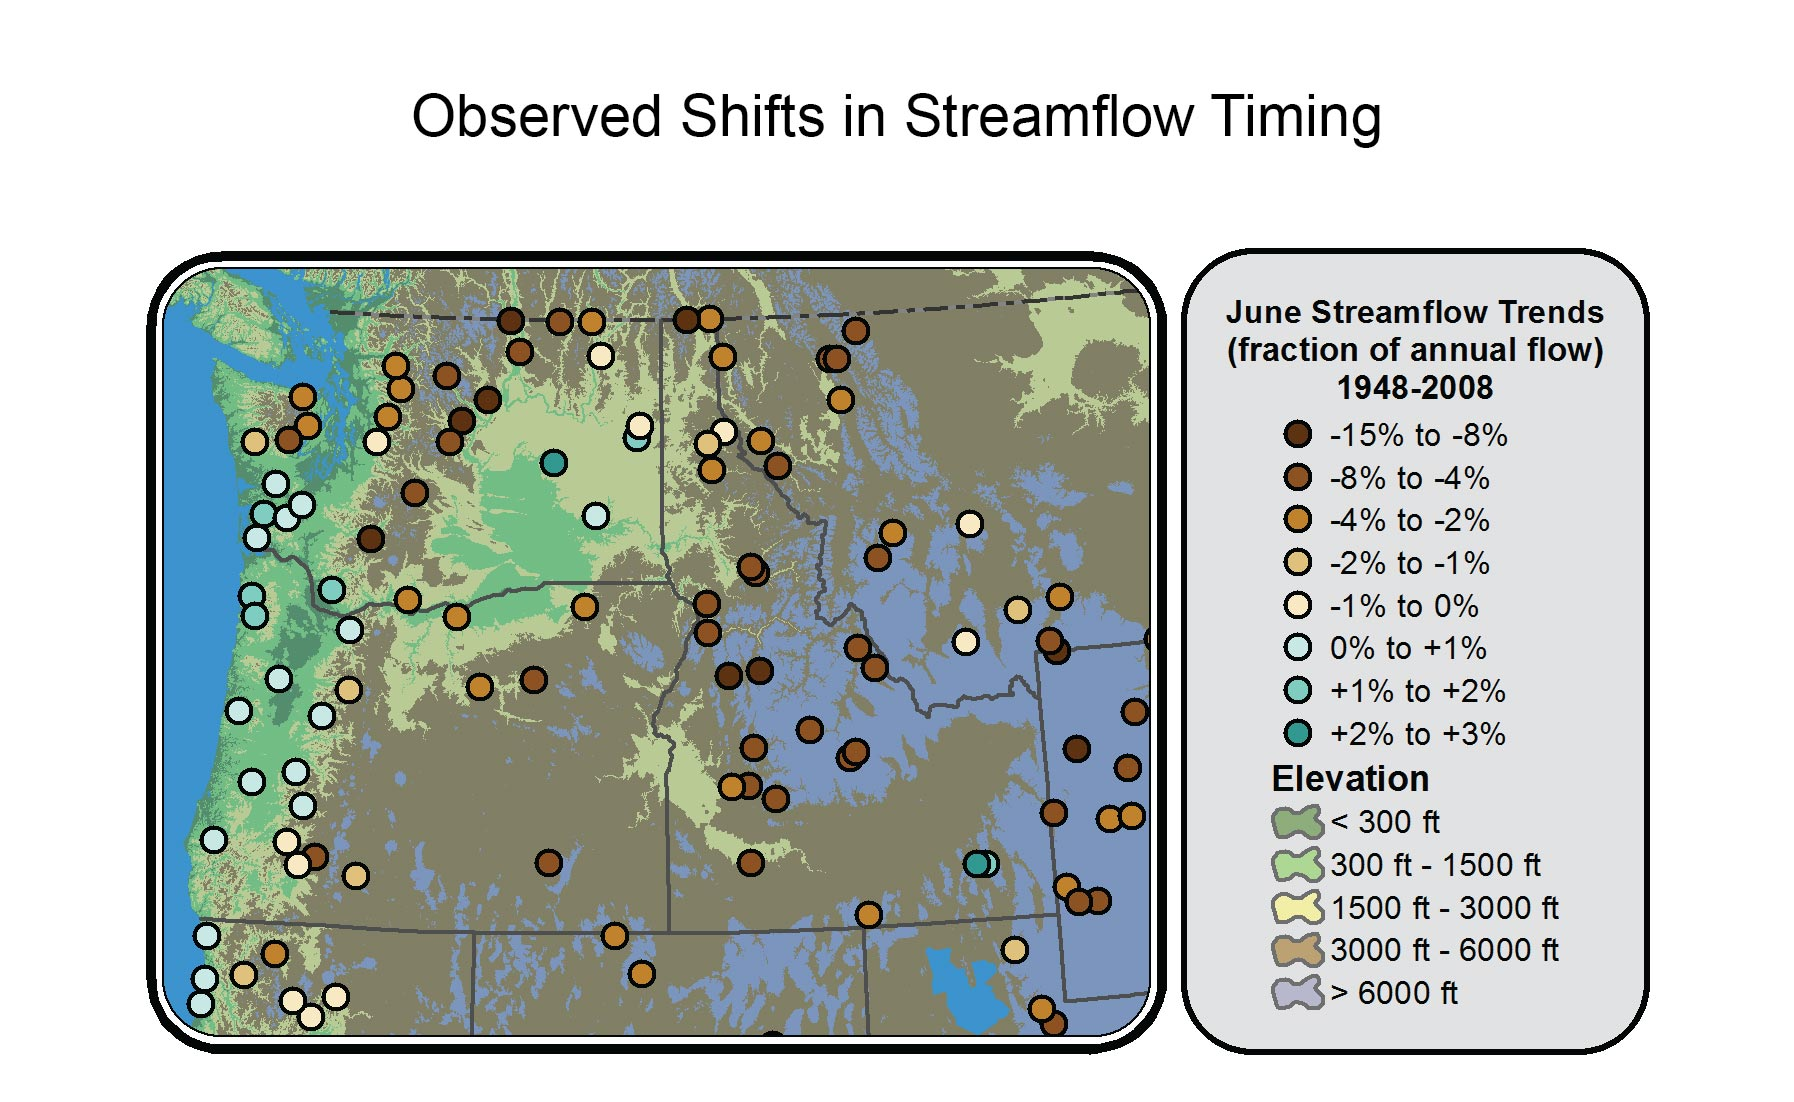 Observed Shifts in Streamflow Timing